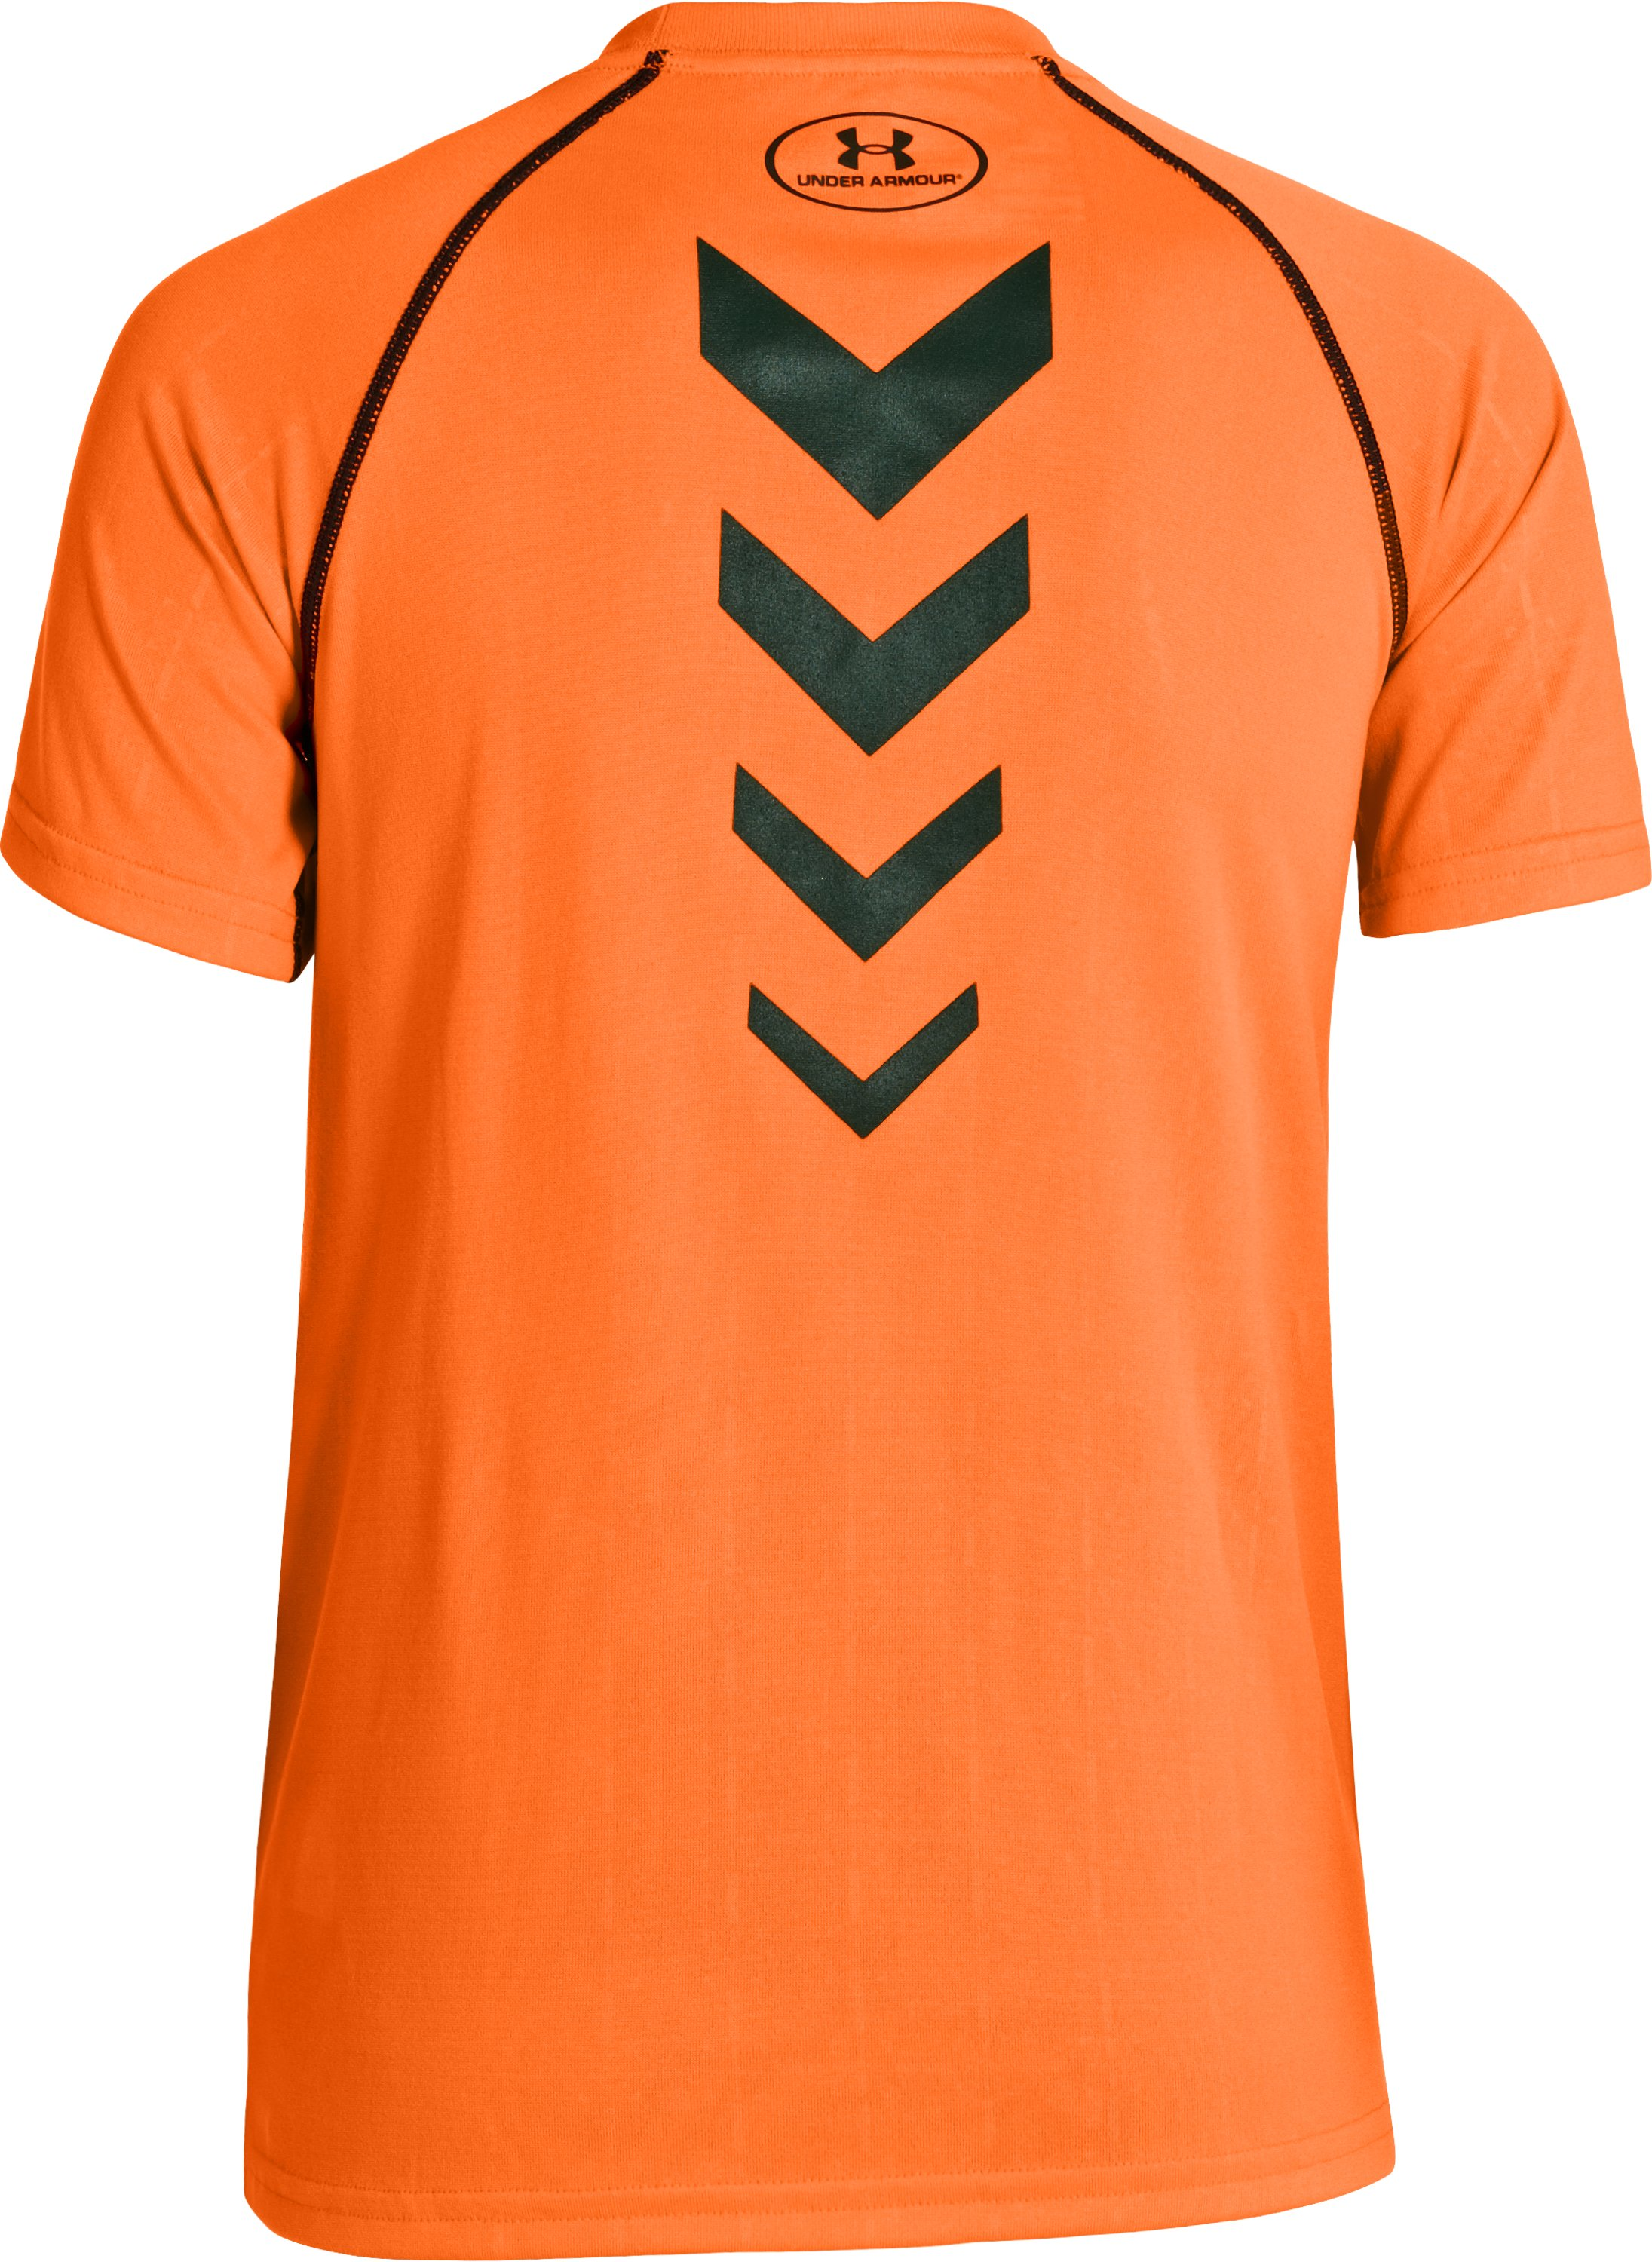 Boys' NFL Combine Authentic Training T-Shirt, Blaze Orange